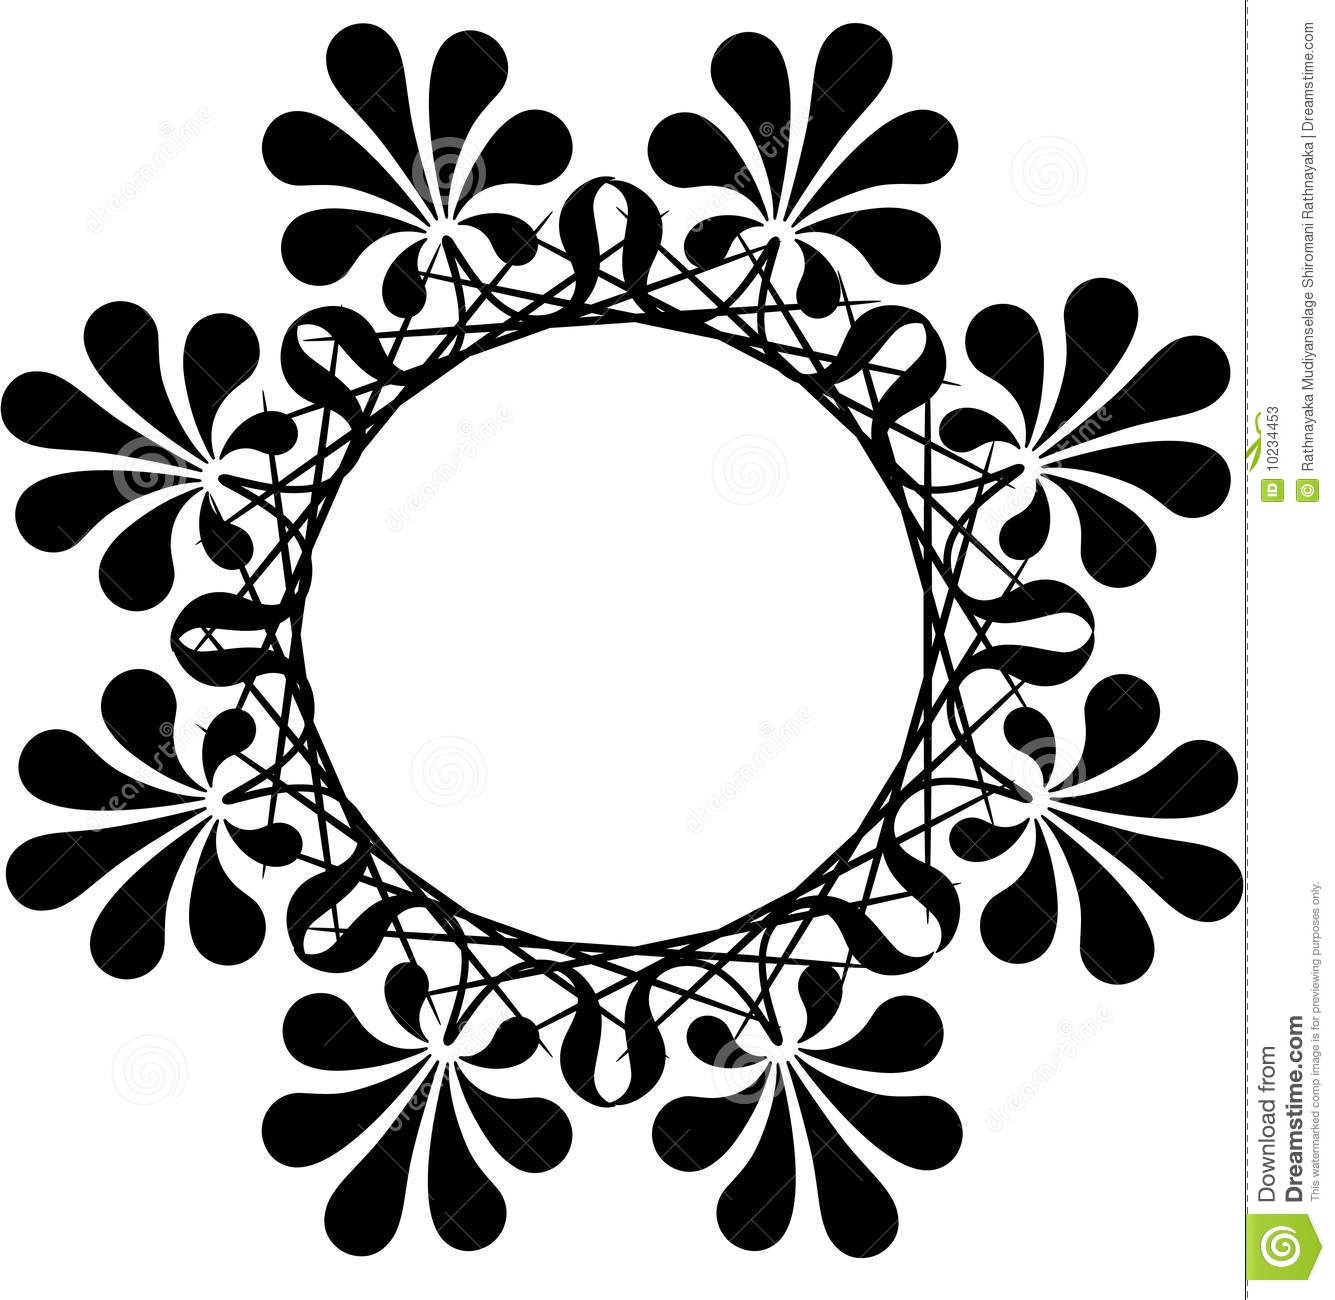 floral circle pattern stock illustration illustration of art deco patterns free vector download art deco gatsby pattern vector